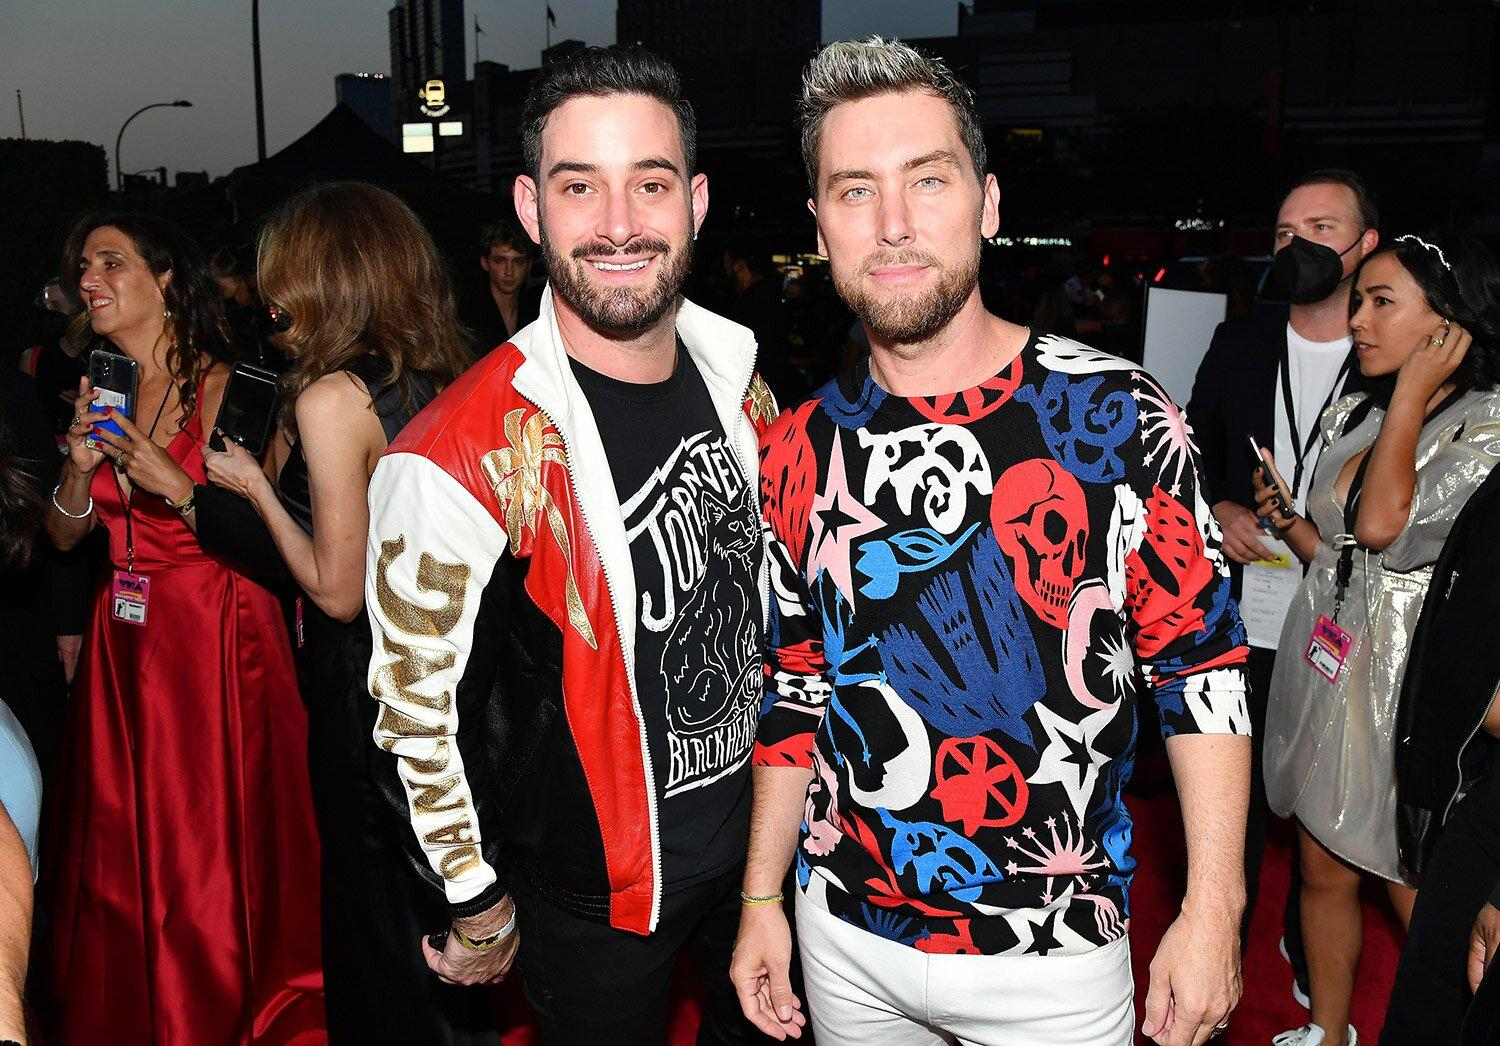 Lance Bass and Husband Michael Turchin Welcome Twin Babies Violet and Alexander via Surrogate